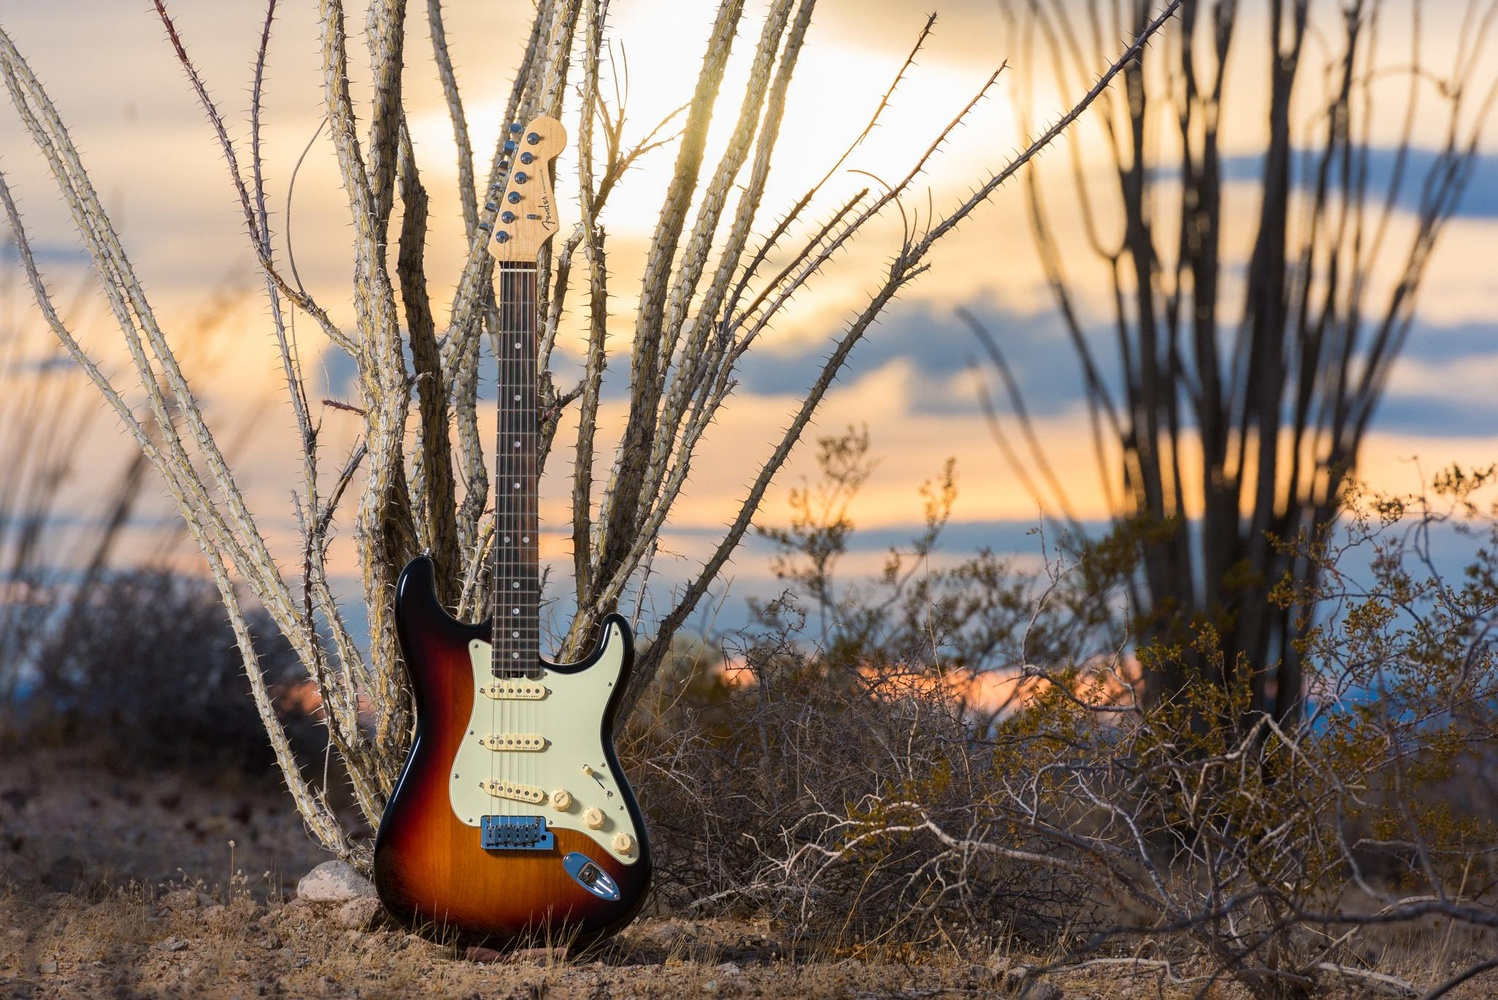 The Elite Series Fender American Statocaster  by Dusty Wooddell